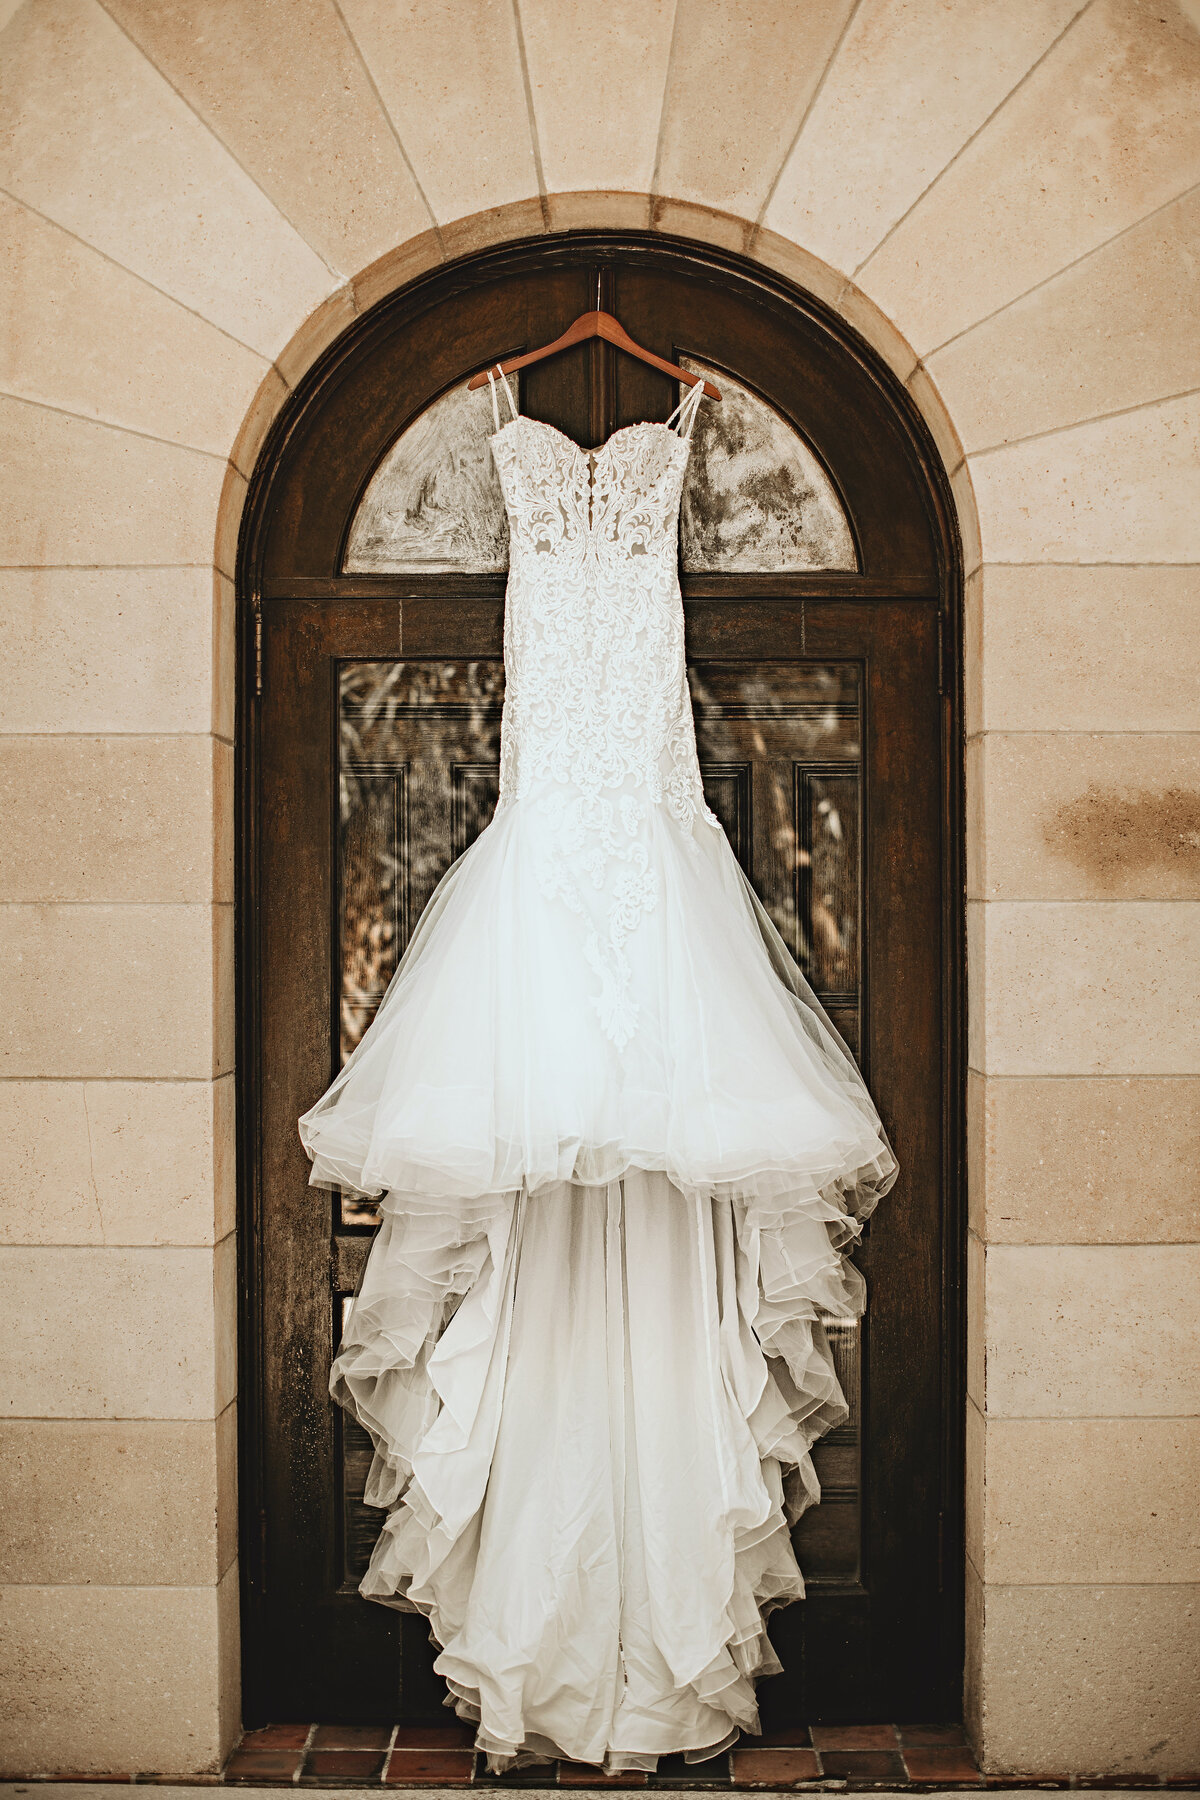 An image of the bride's lovely wedding dress and long train hanging from the top of a vintage arched door and stone arch by Garry & Stacy Photography Co - St Petersburg wedding photography